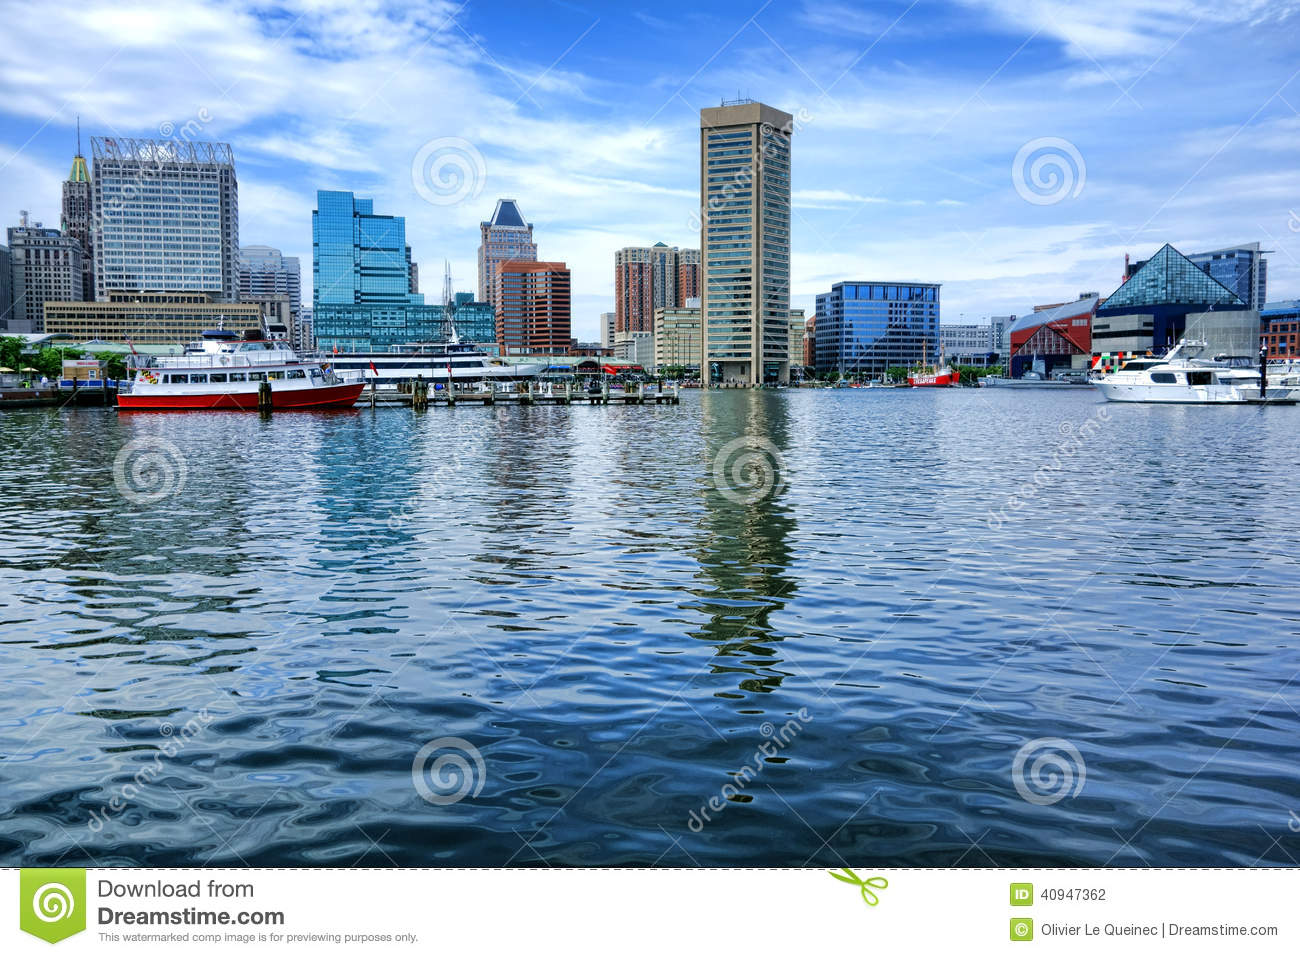 Inre hamnvattensikt i Baltimore Maryland